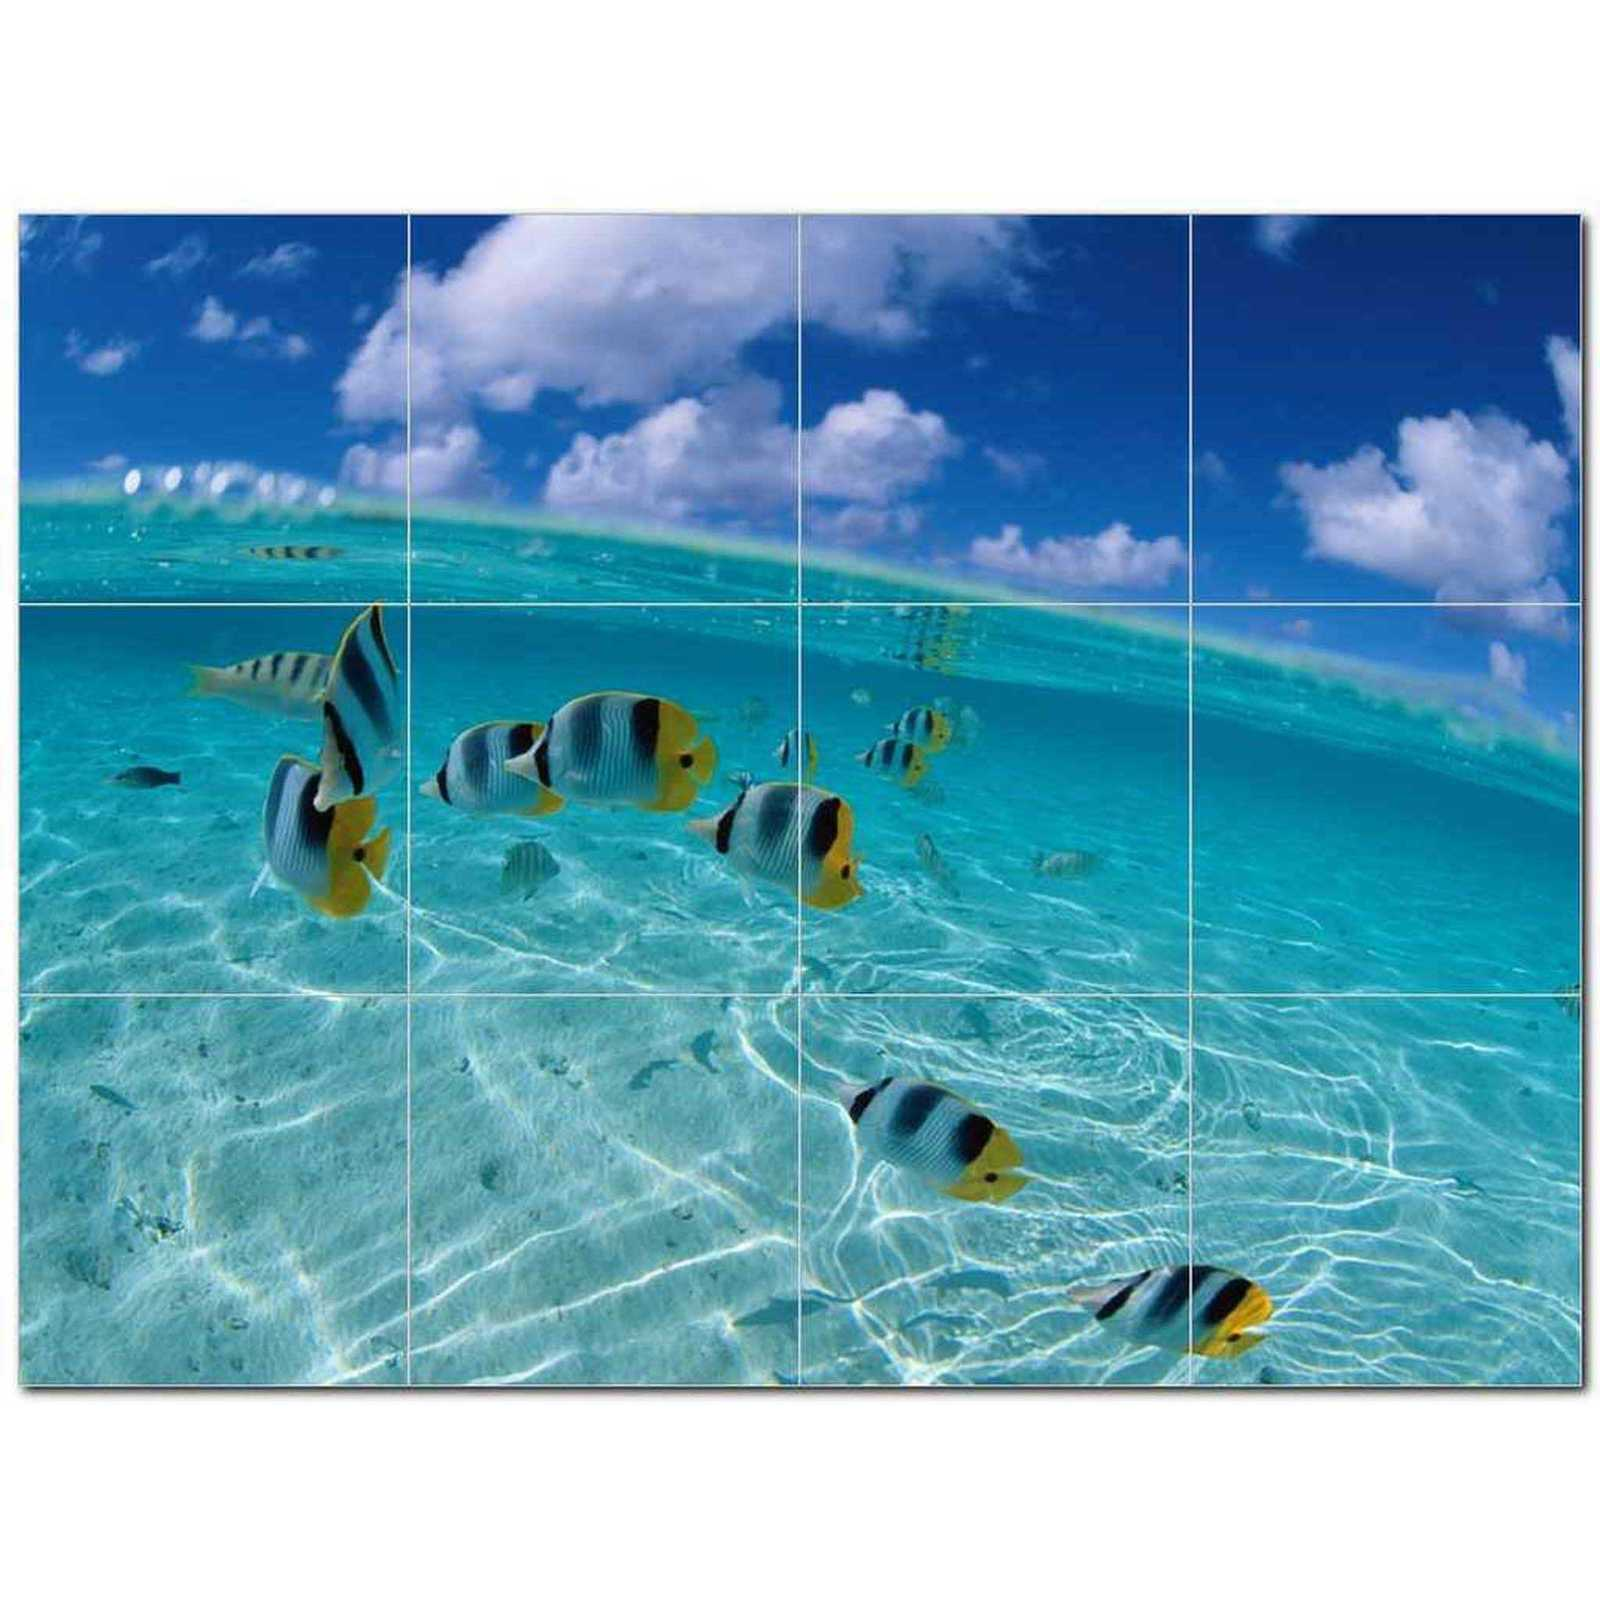 Primary image for Sealife Photo Ceramic Tile Mural Kitchen Backsplash Bathroom Shower BAZ405785